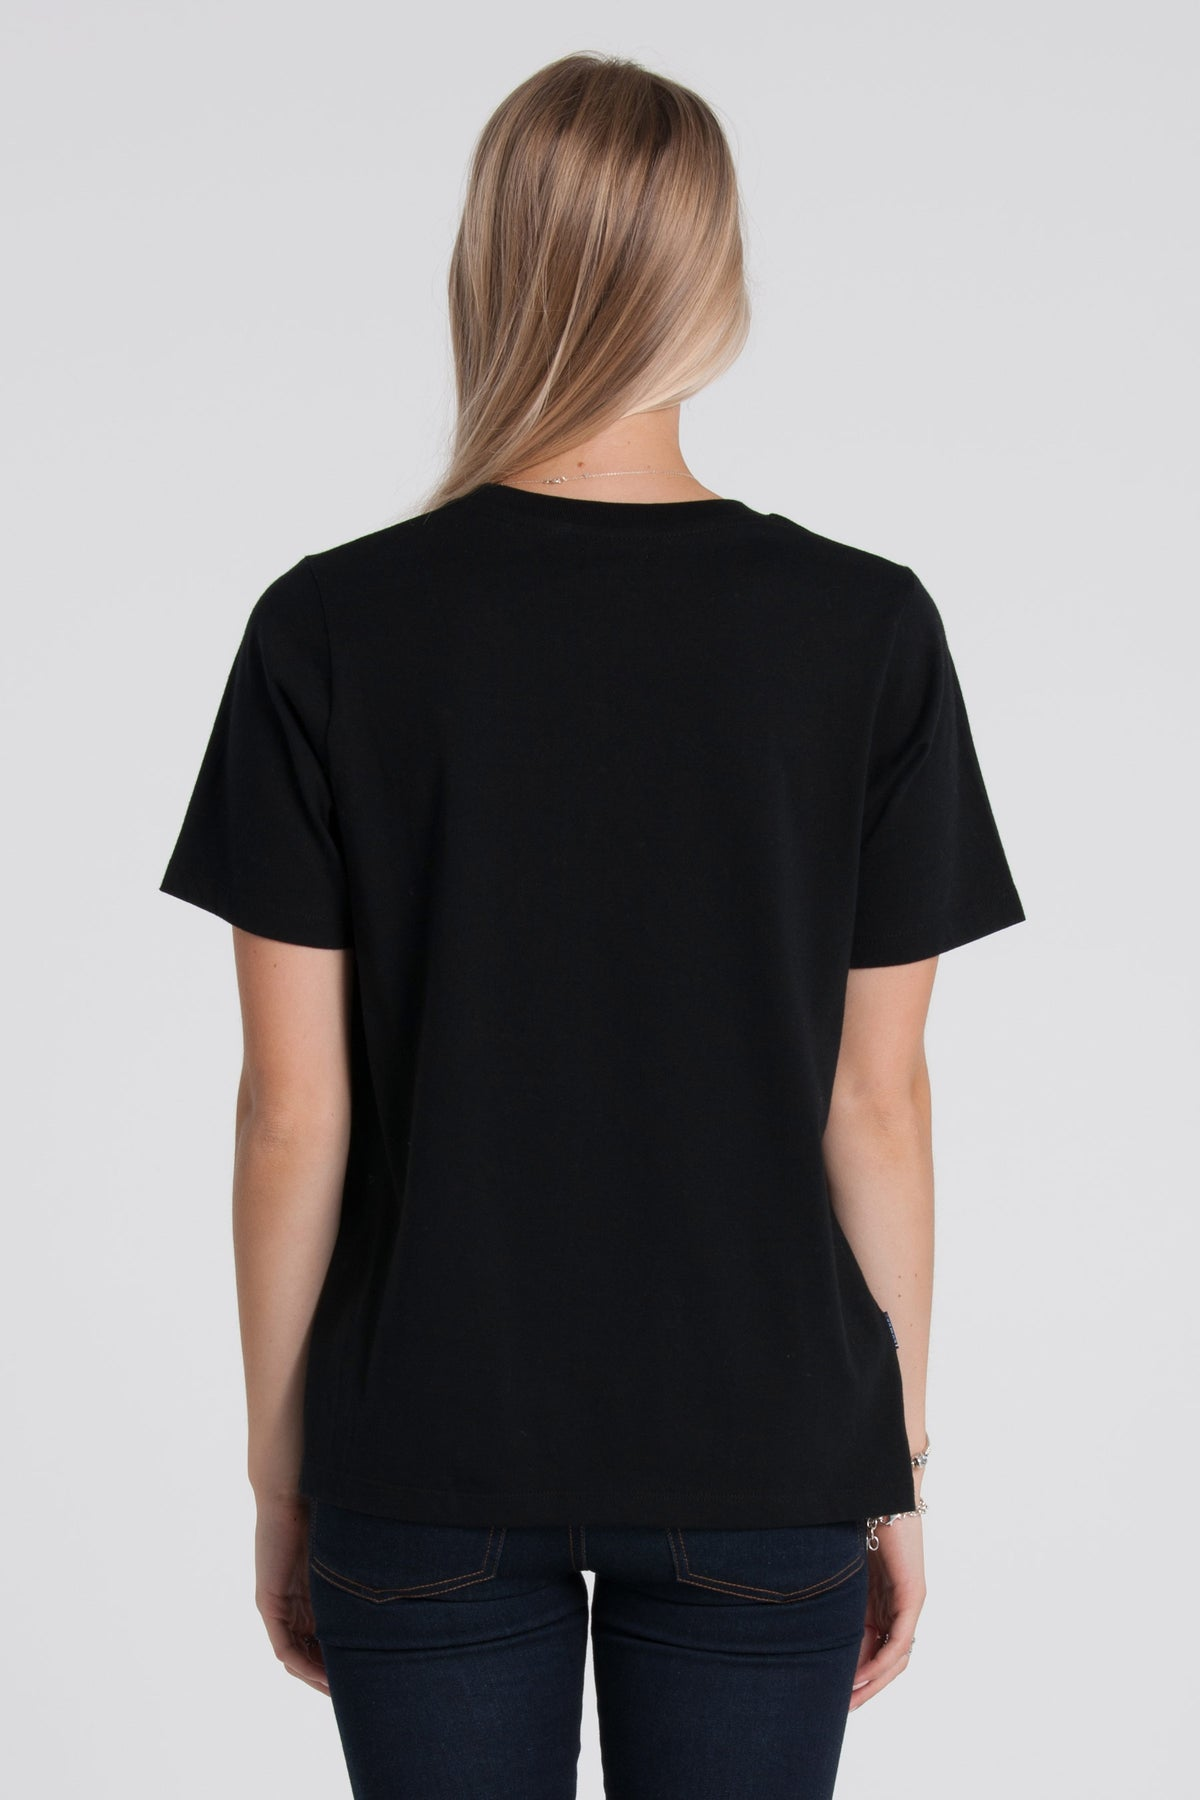 Eclipse Active Tee - Black